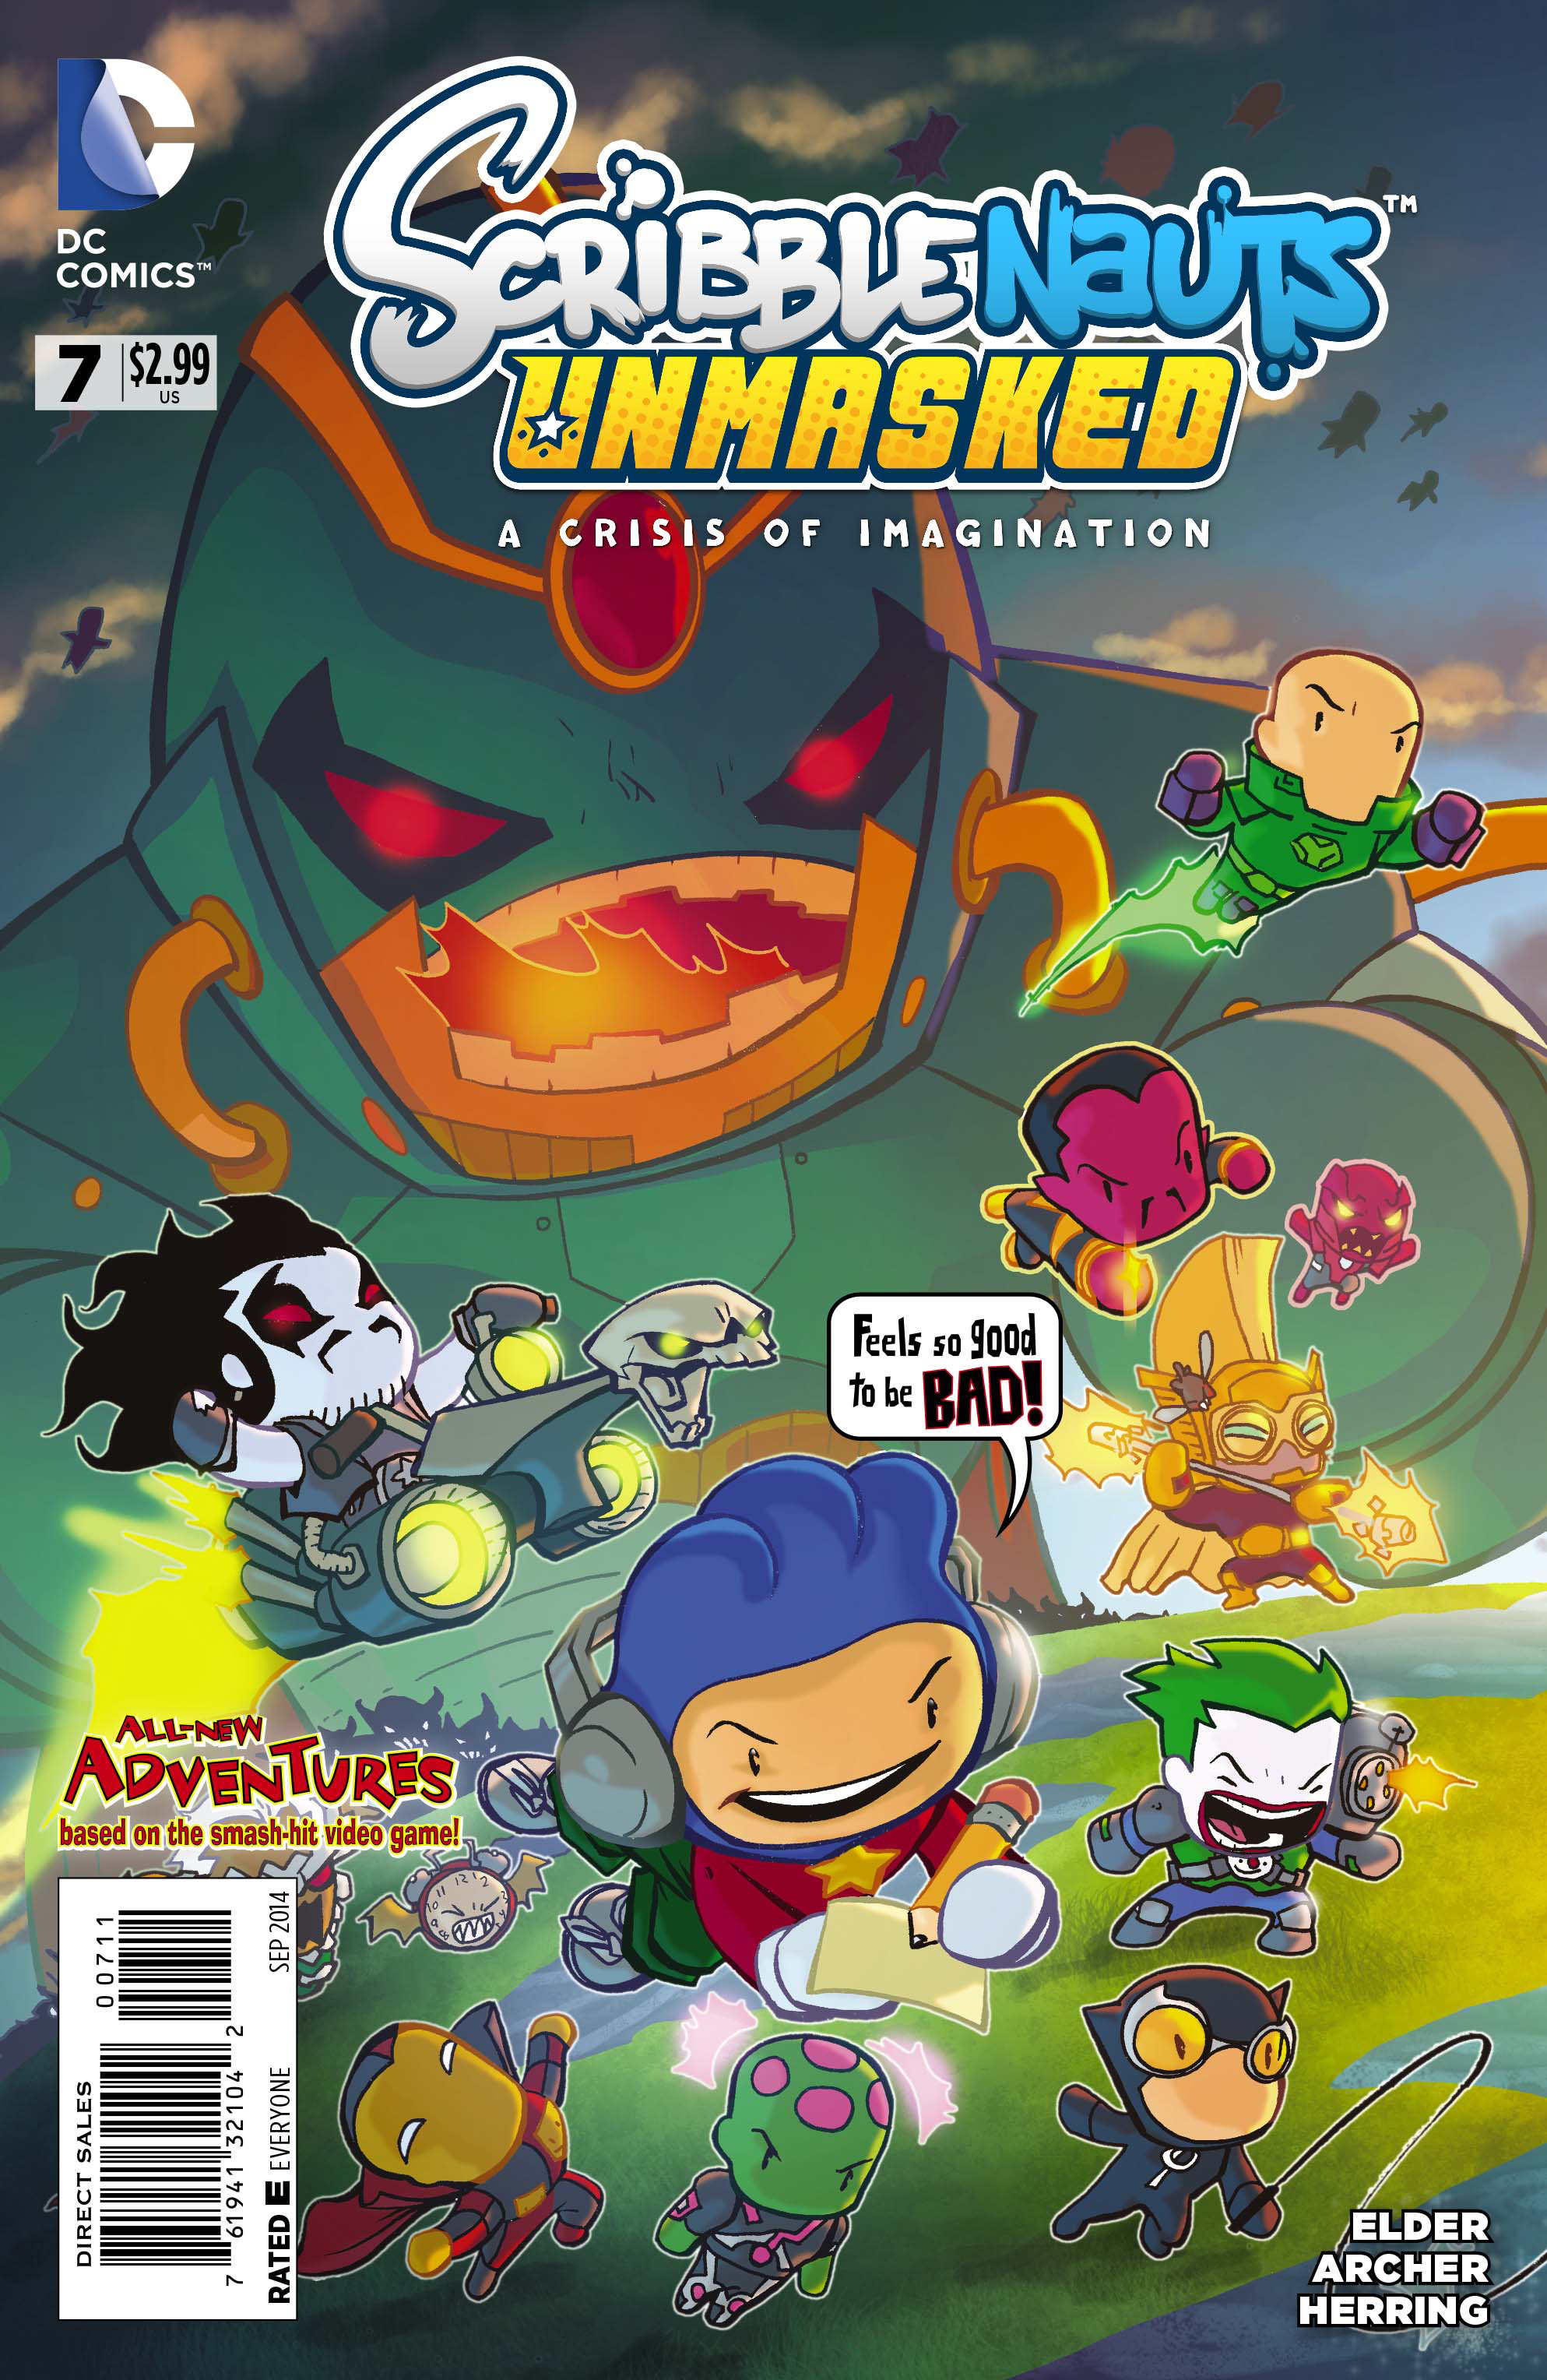 SCRIBBLENAUTS UNMASKED CRISIS OF IMAGINATION #7